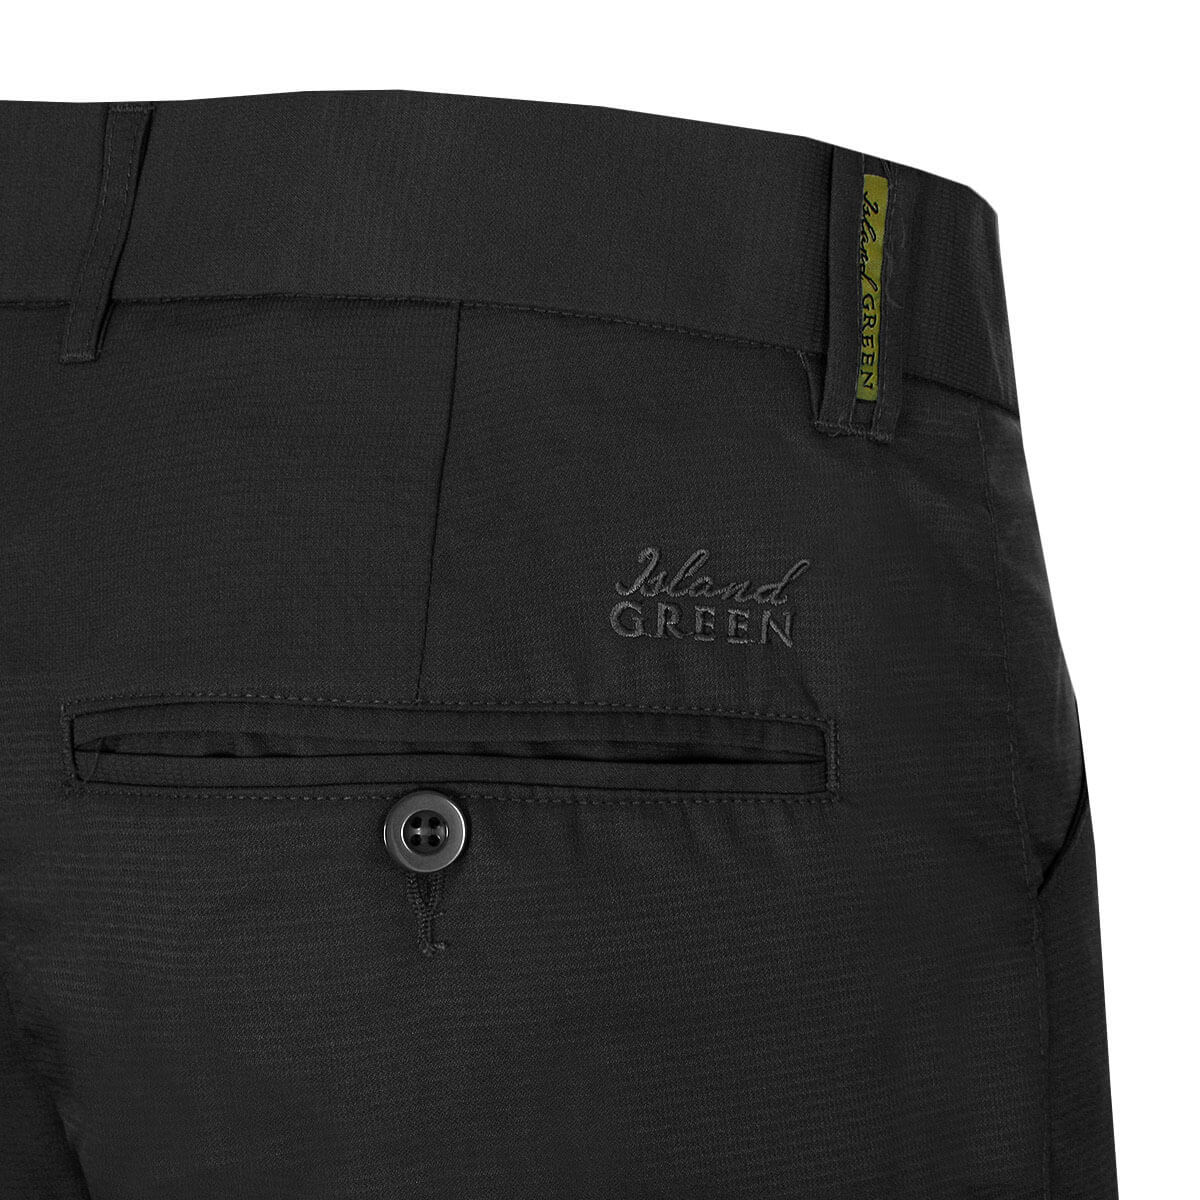 Island-Green-Breathable-Tapered-Slim-Fit-Mens-Golf-Trousers-47-OFF-RRP thumbnail 4